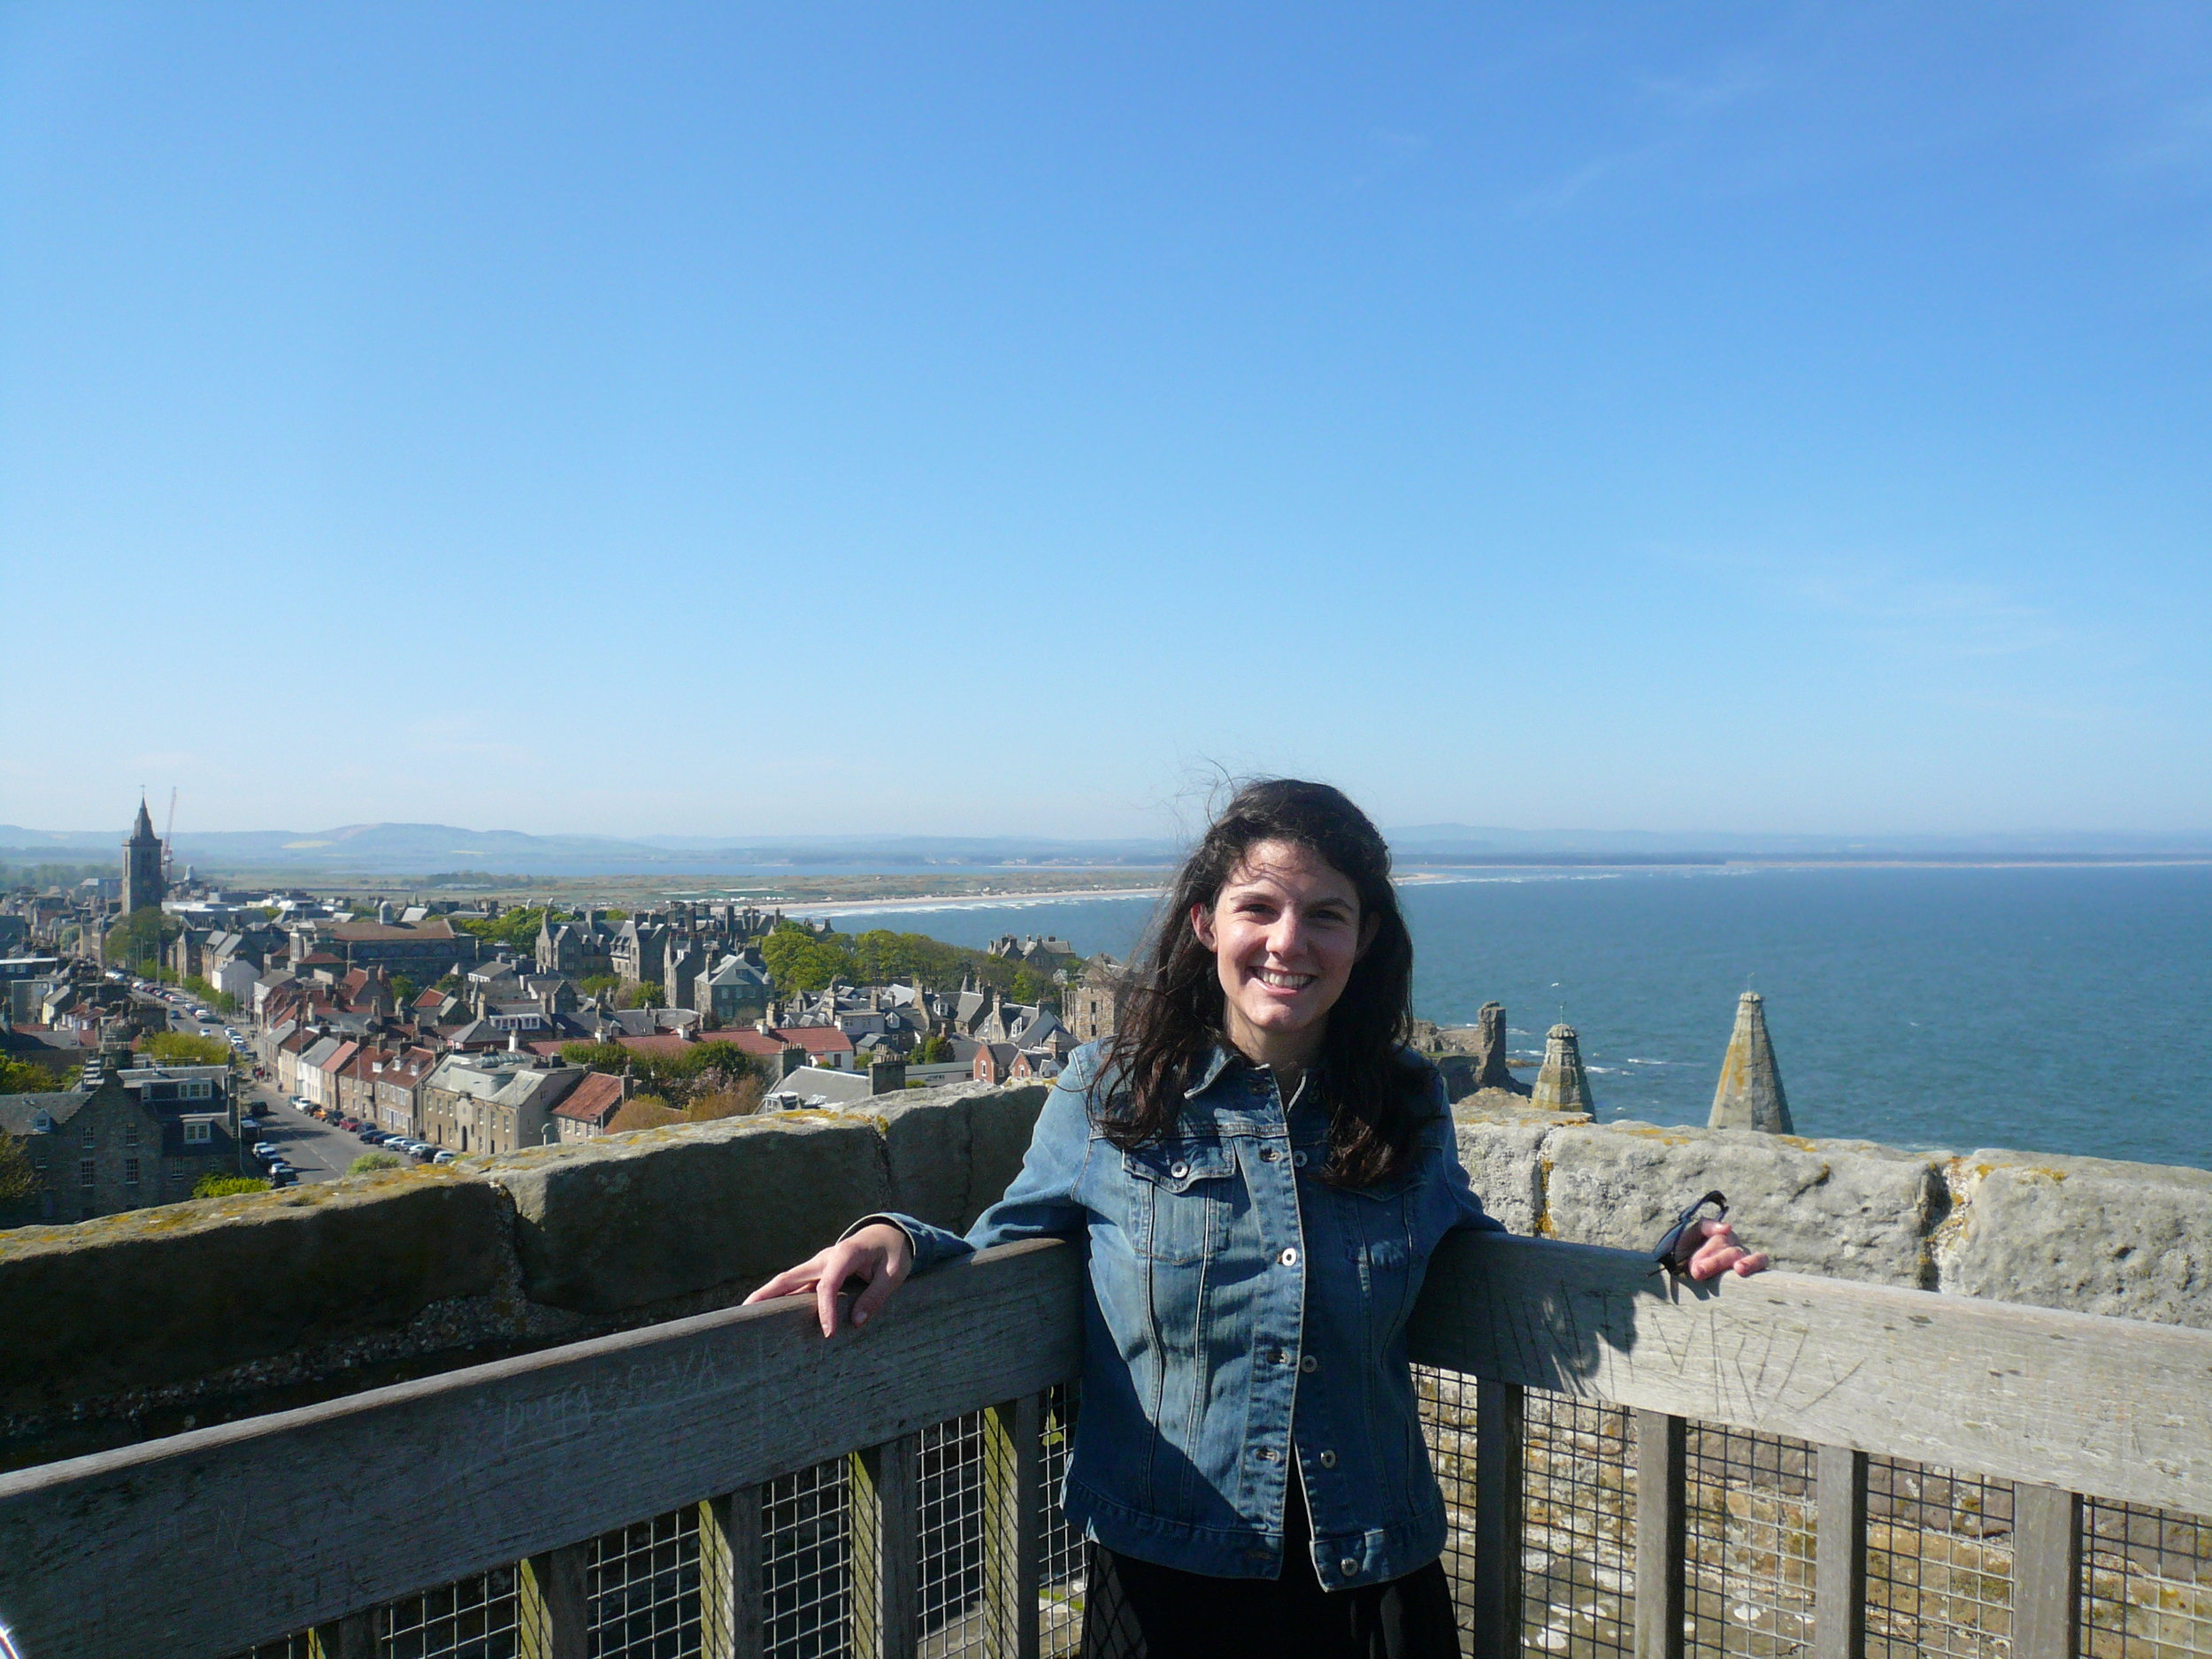 Overlooking the quaint and very old seaside town of St Andrews, which was my home for four years